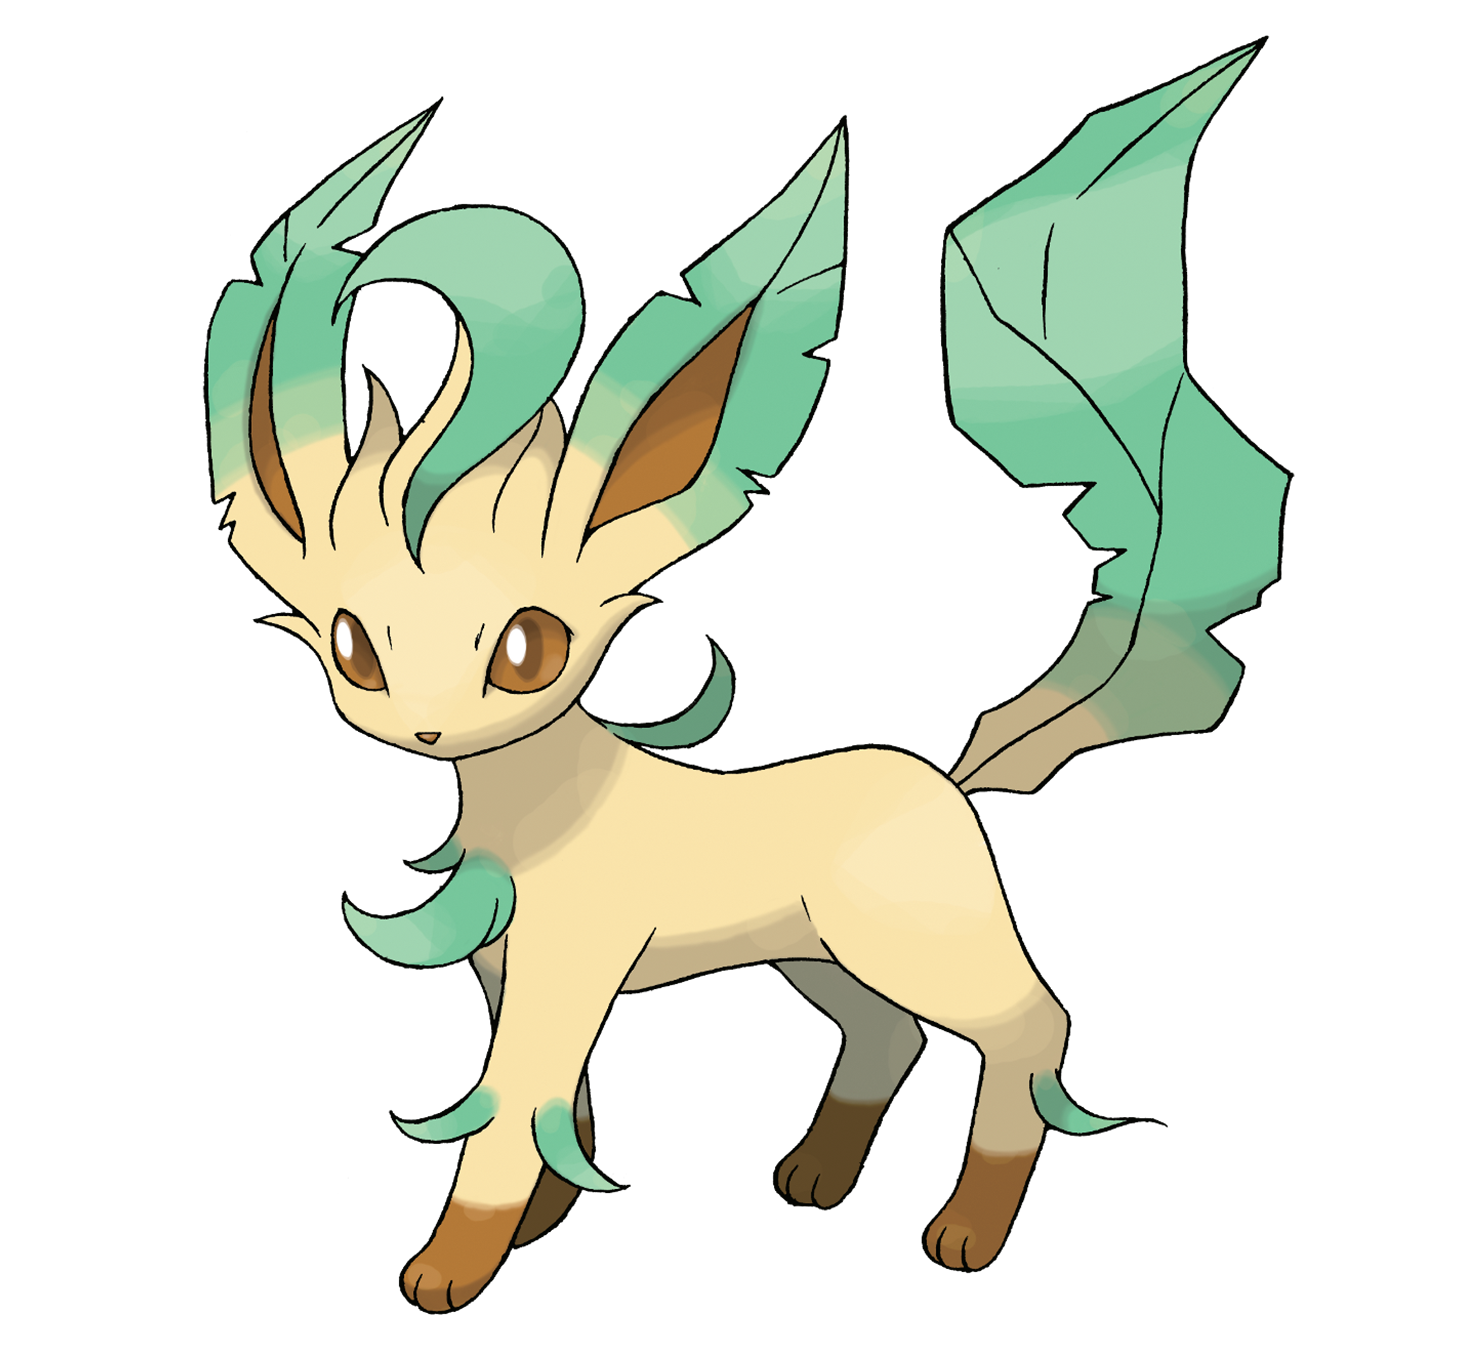 http://static1.wikia.nocookie.net/__cb20080714202125/es.pokemon/images/9/91/Leafeon.png